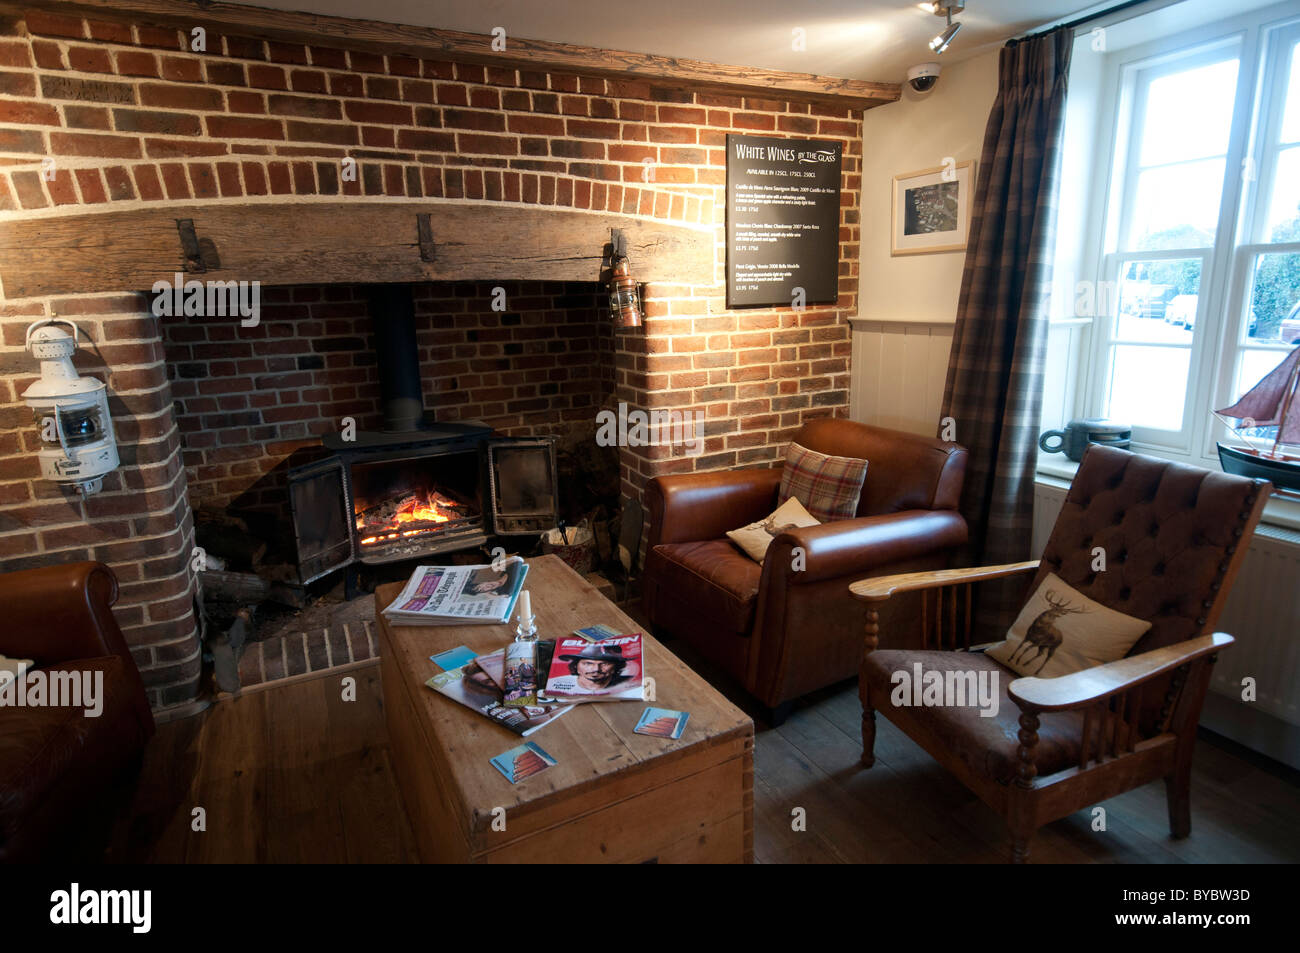 by the Fireside at the Ship Inn Public house in Conyer Kent England UK - Stock Image